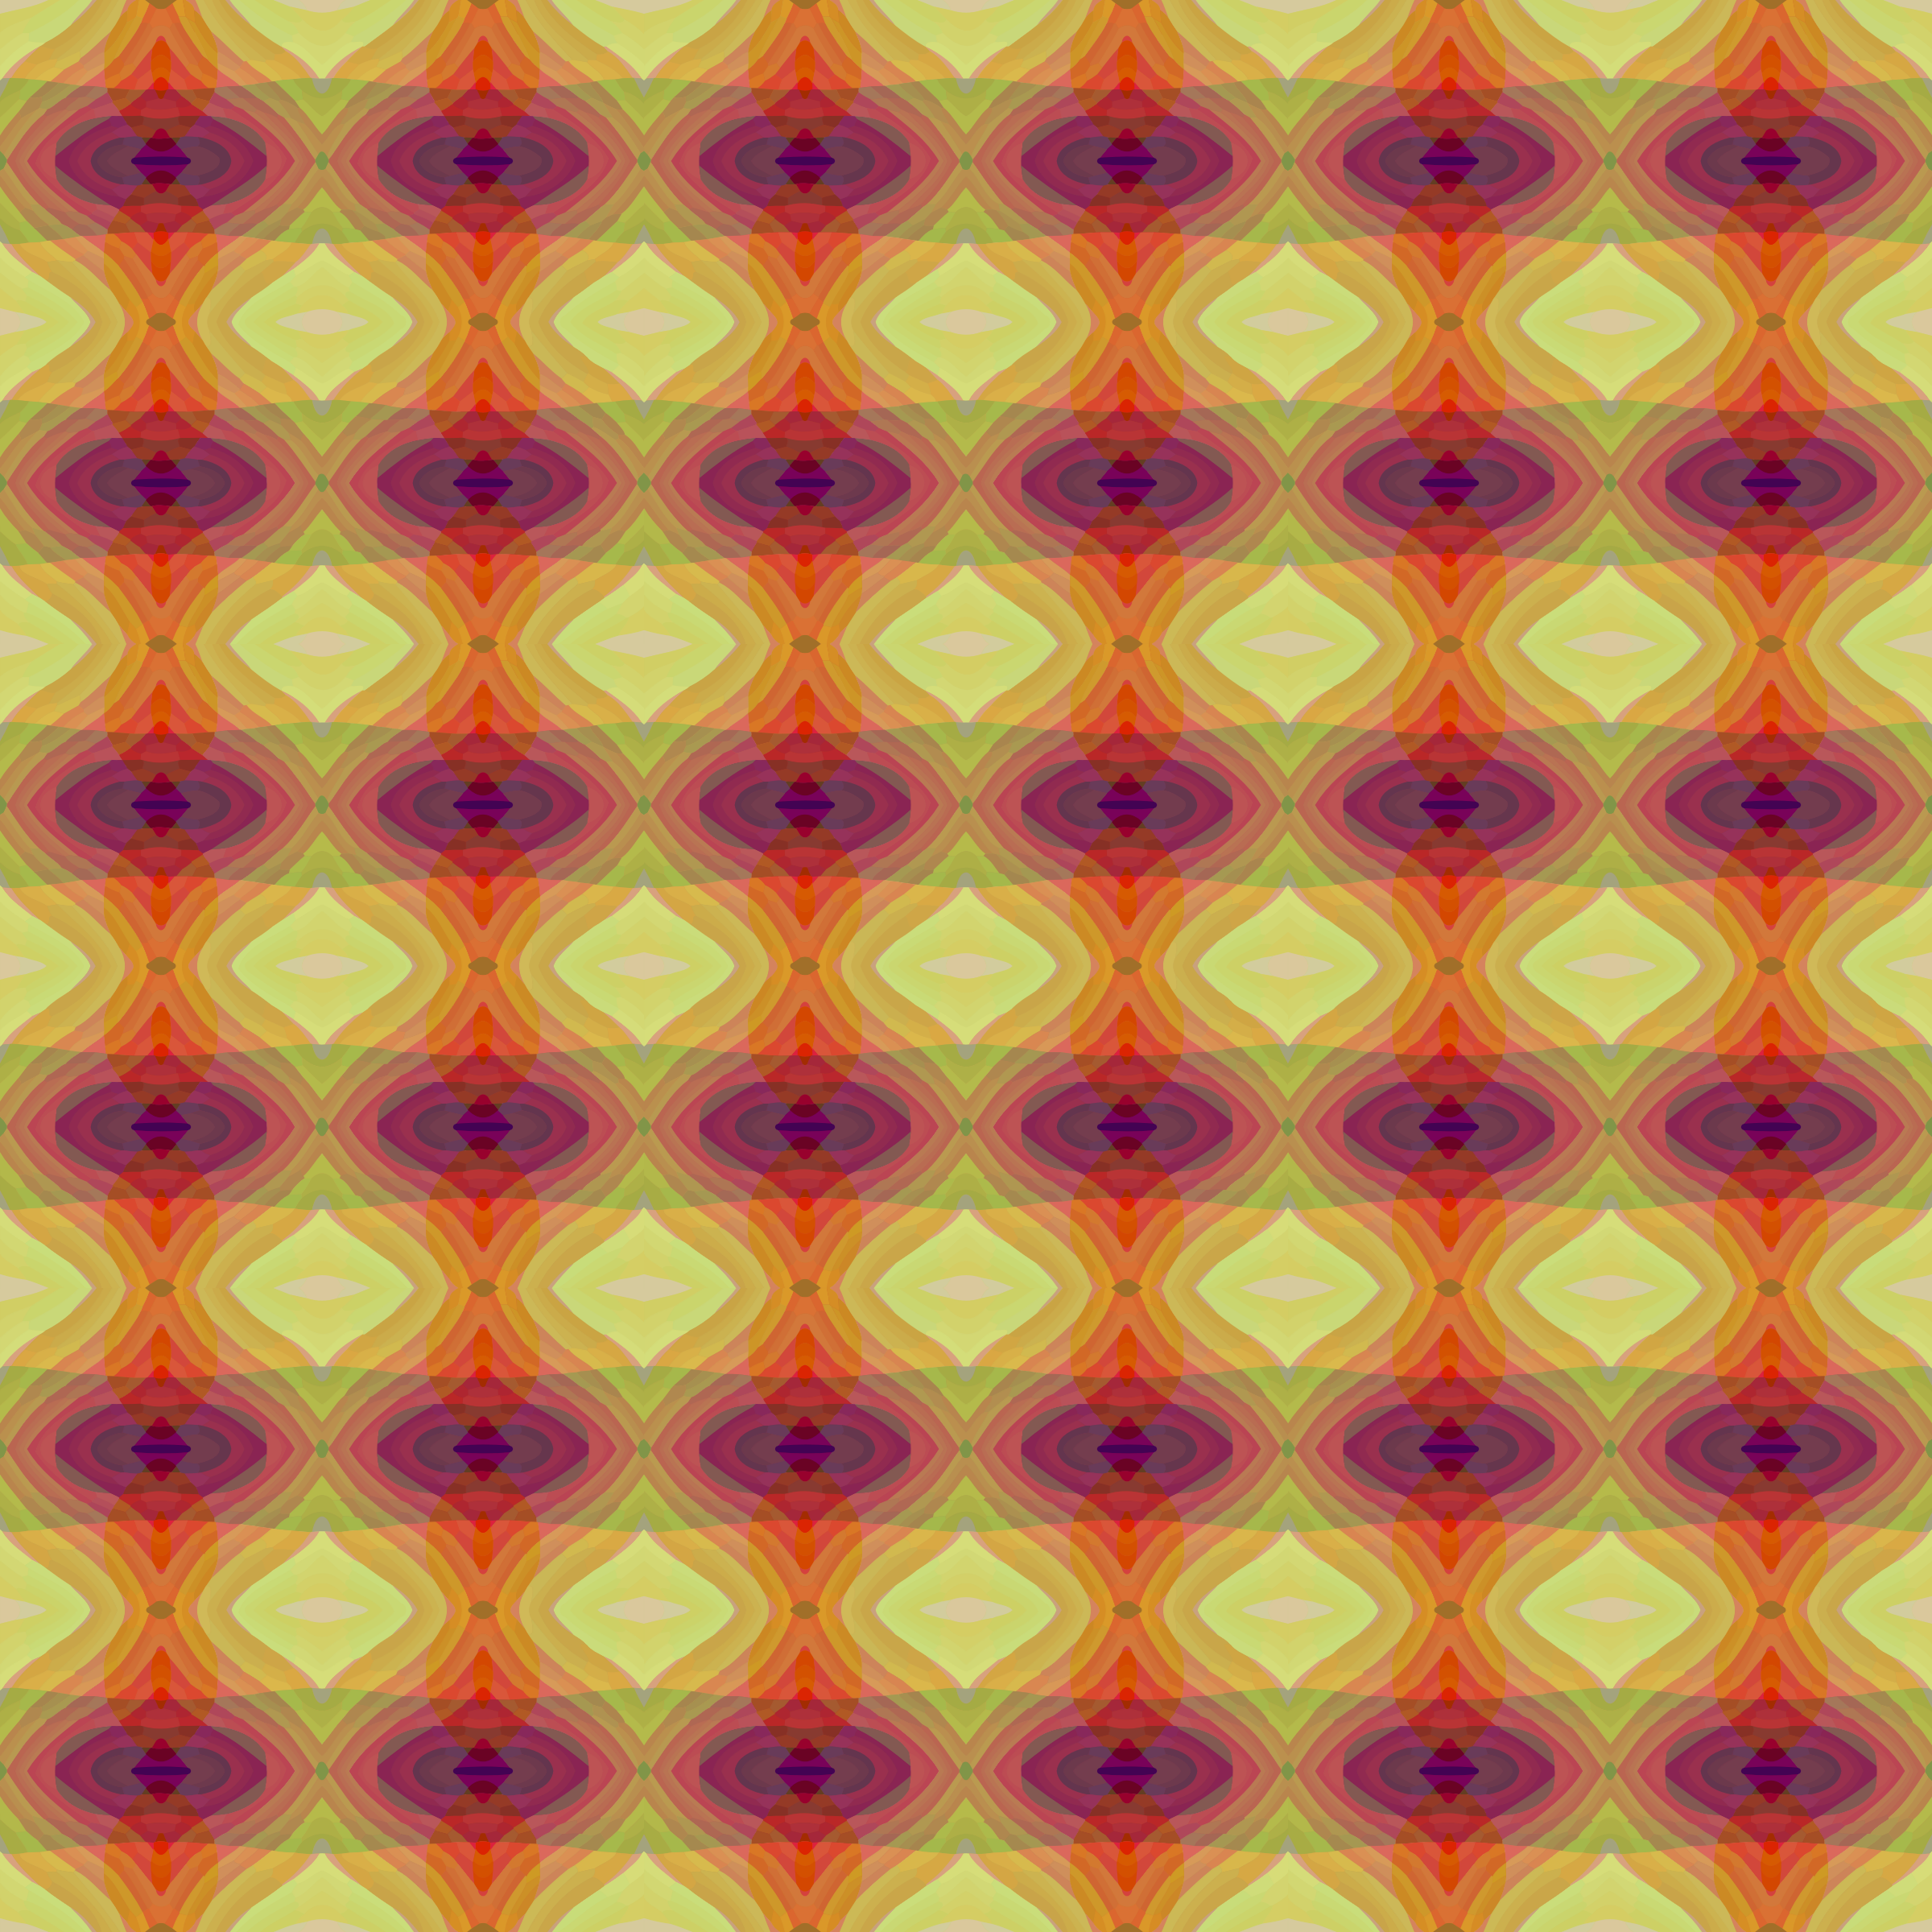 Background pattern 225 (colour 2) by Firkin